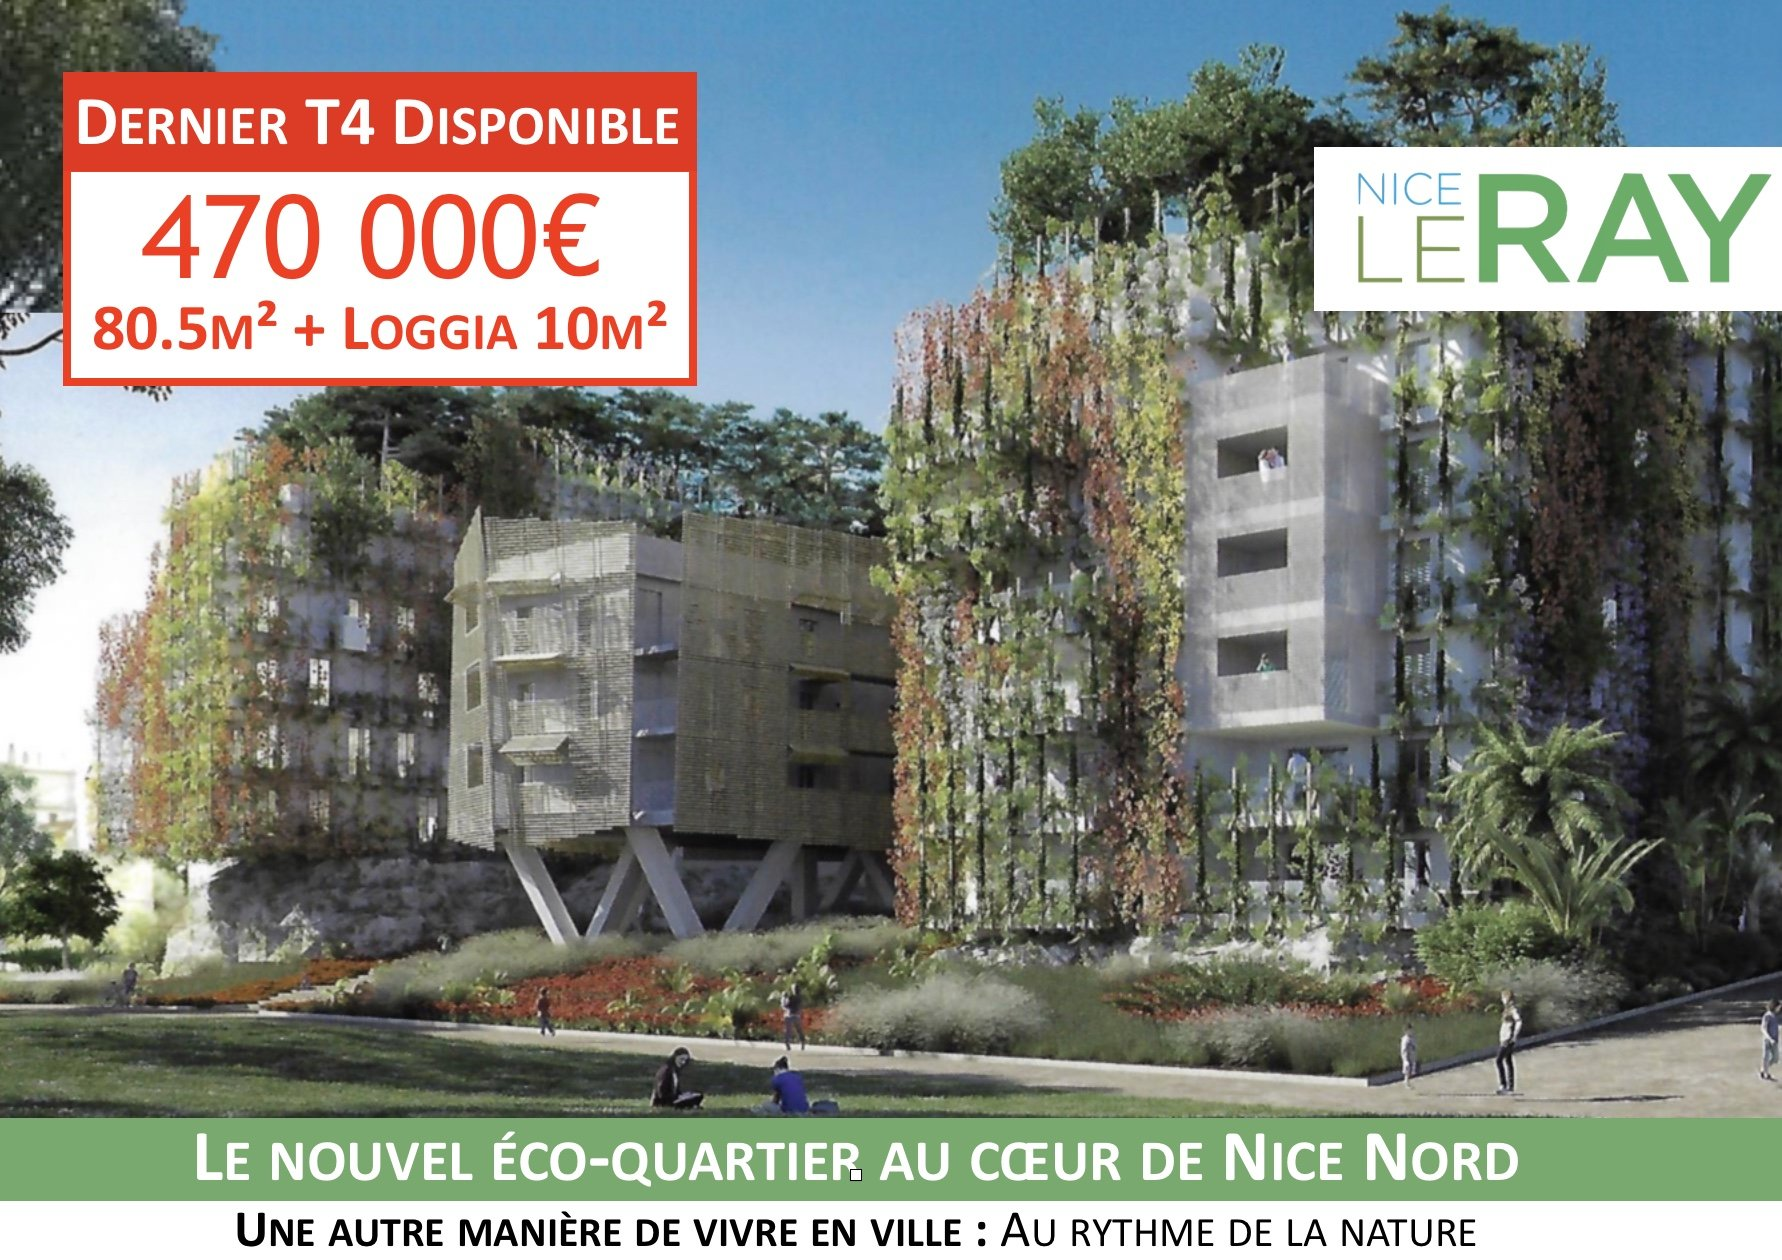 Bel appartement T4 - Nice Le Ray